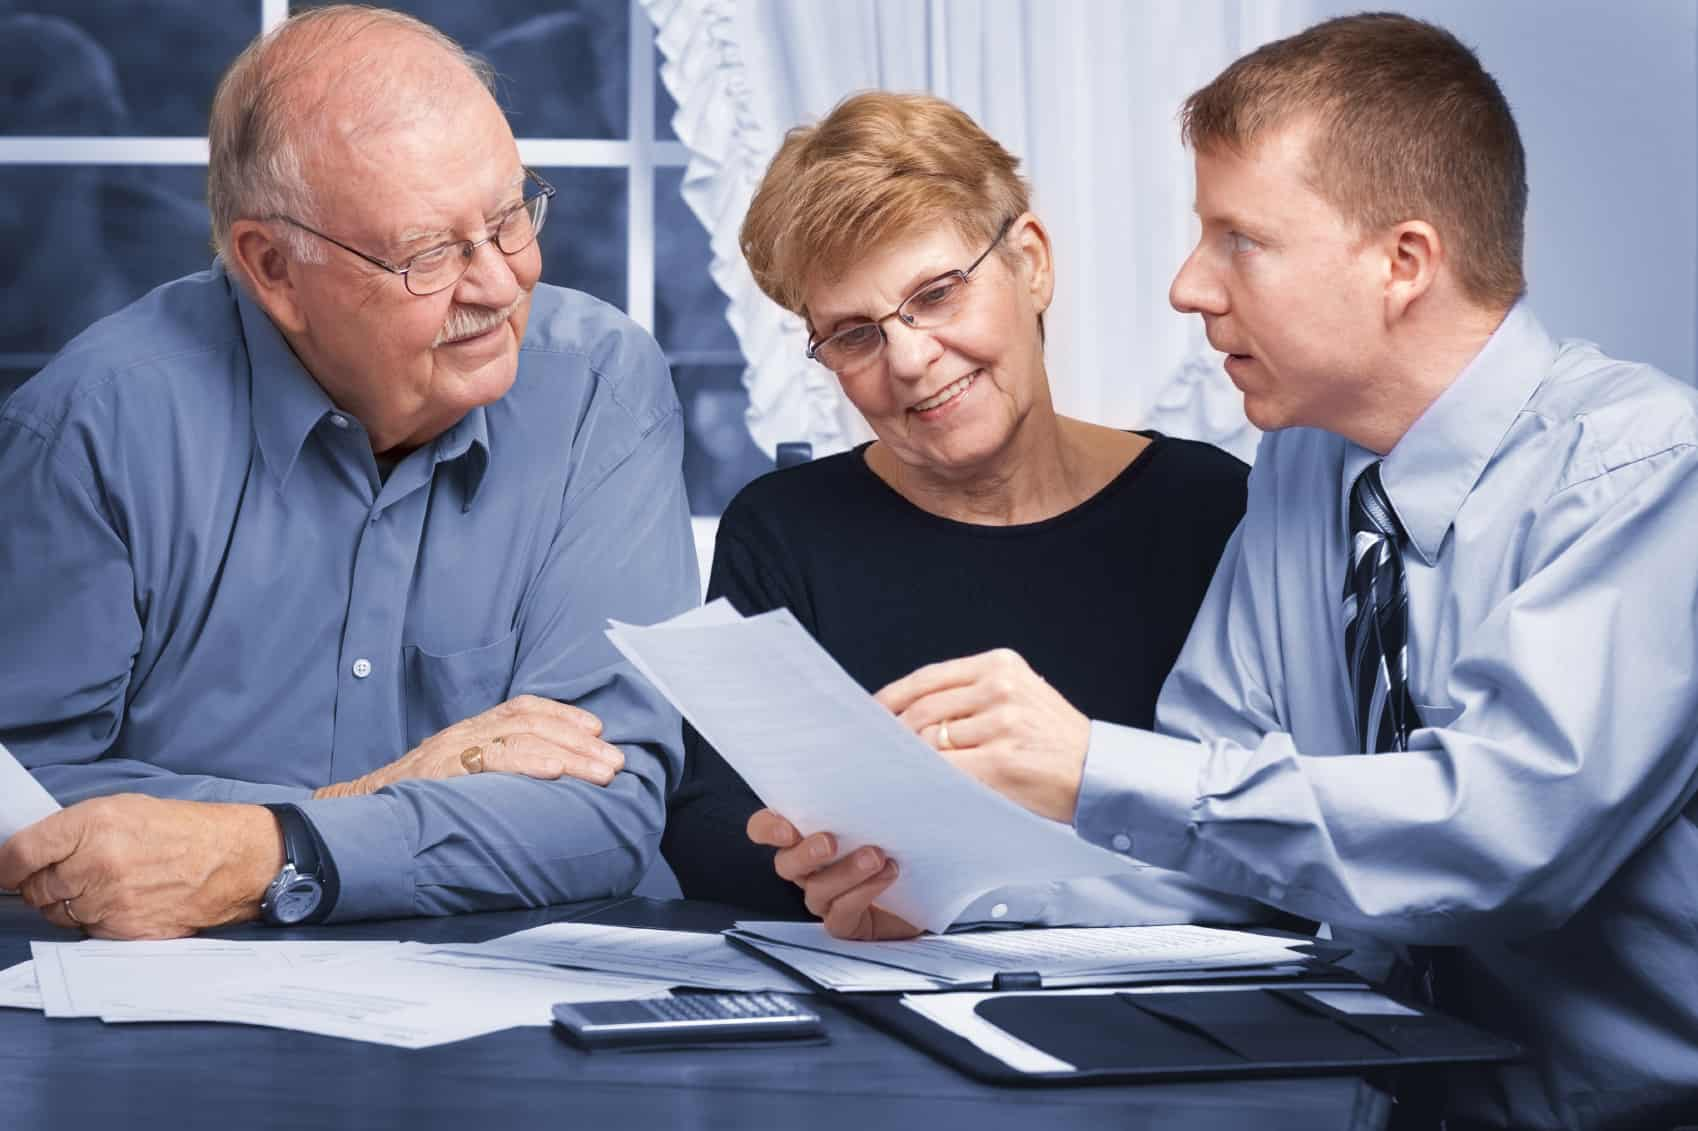 ukcareguide.co.uk - Benefits of speaking to a financial advisor